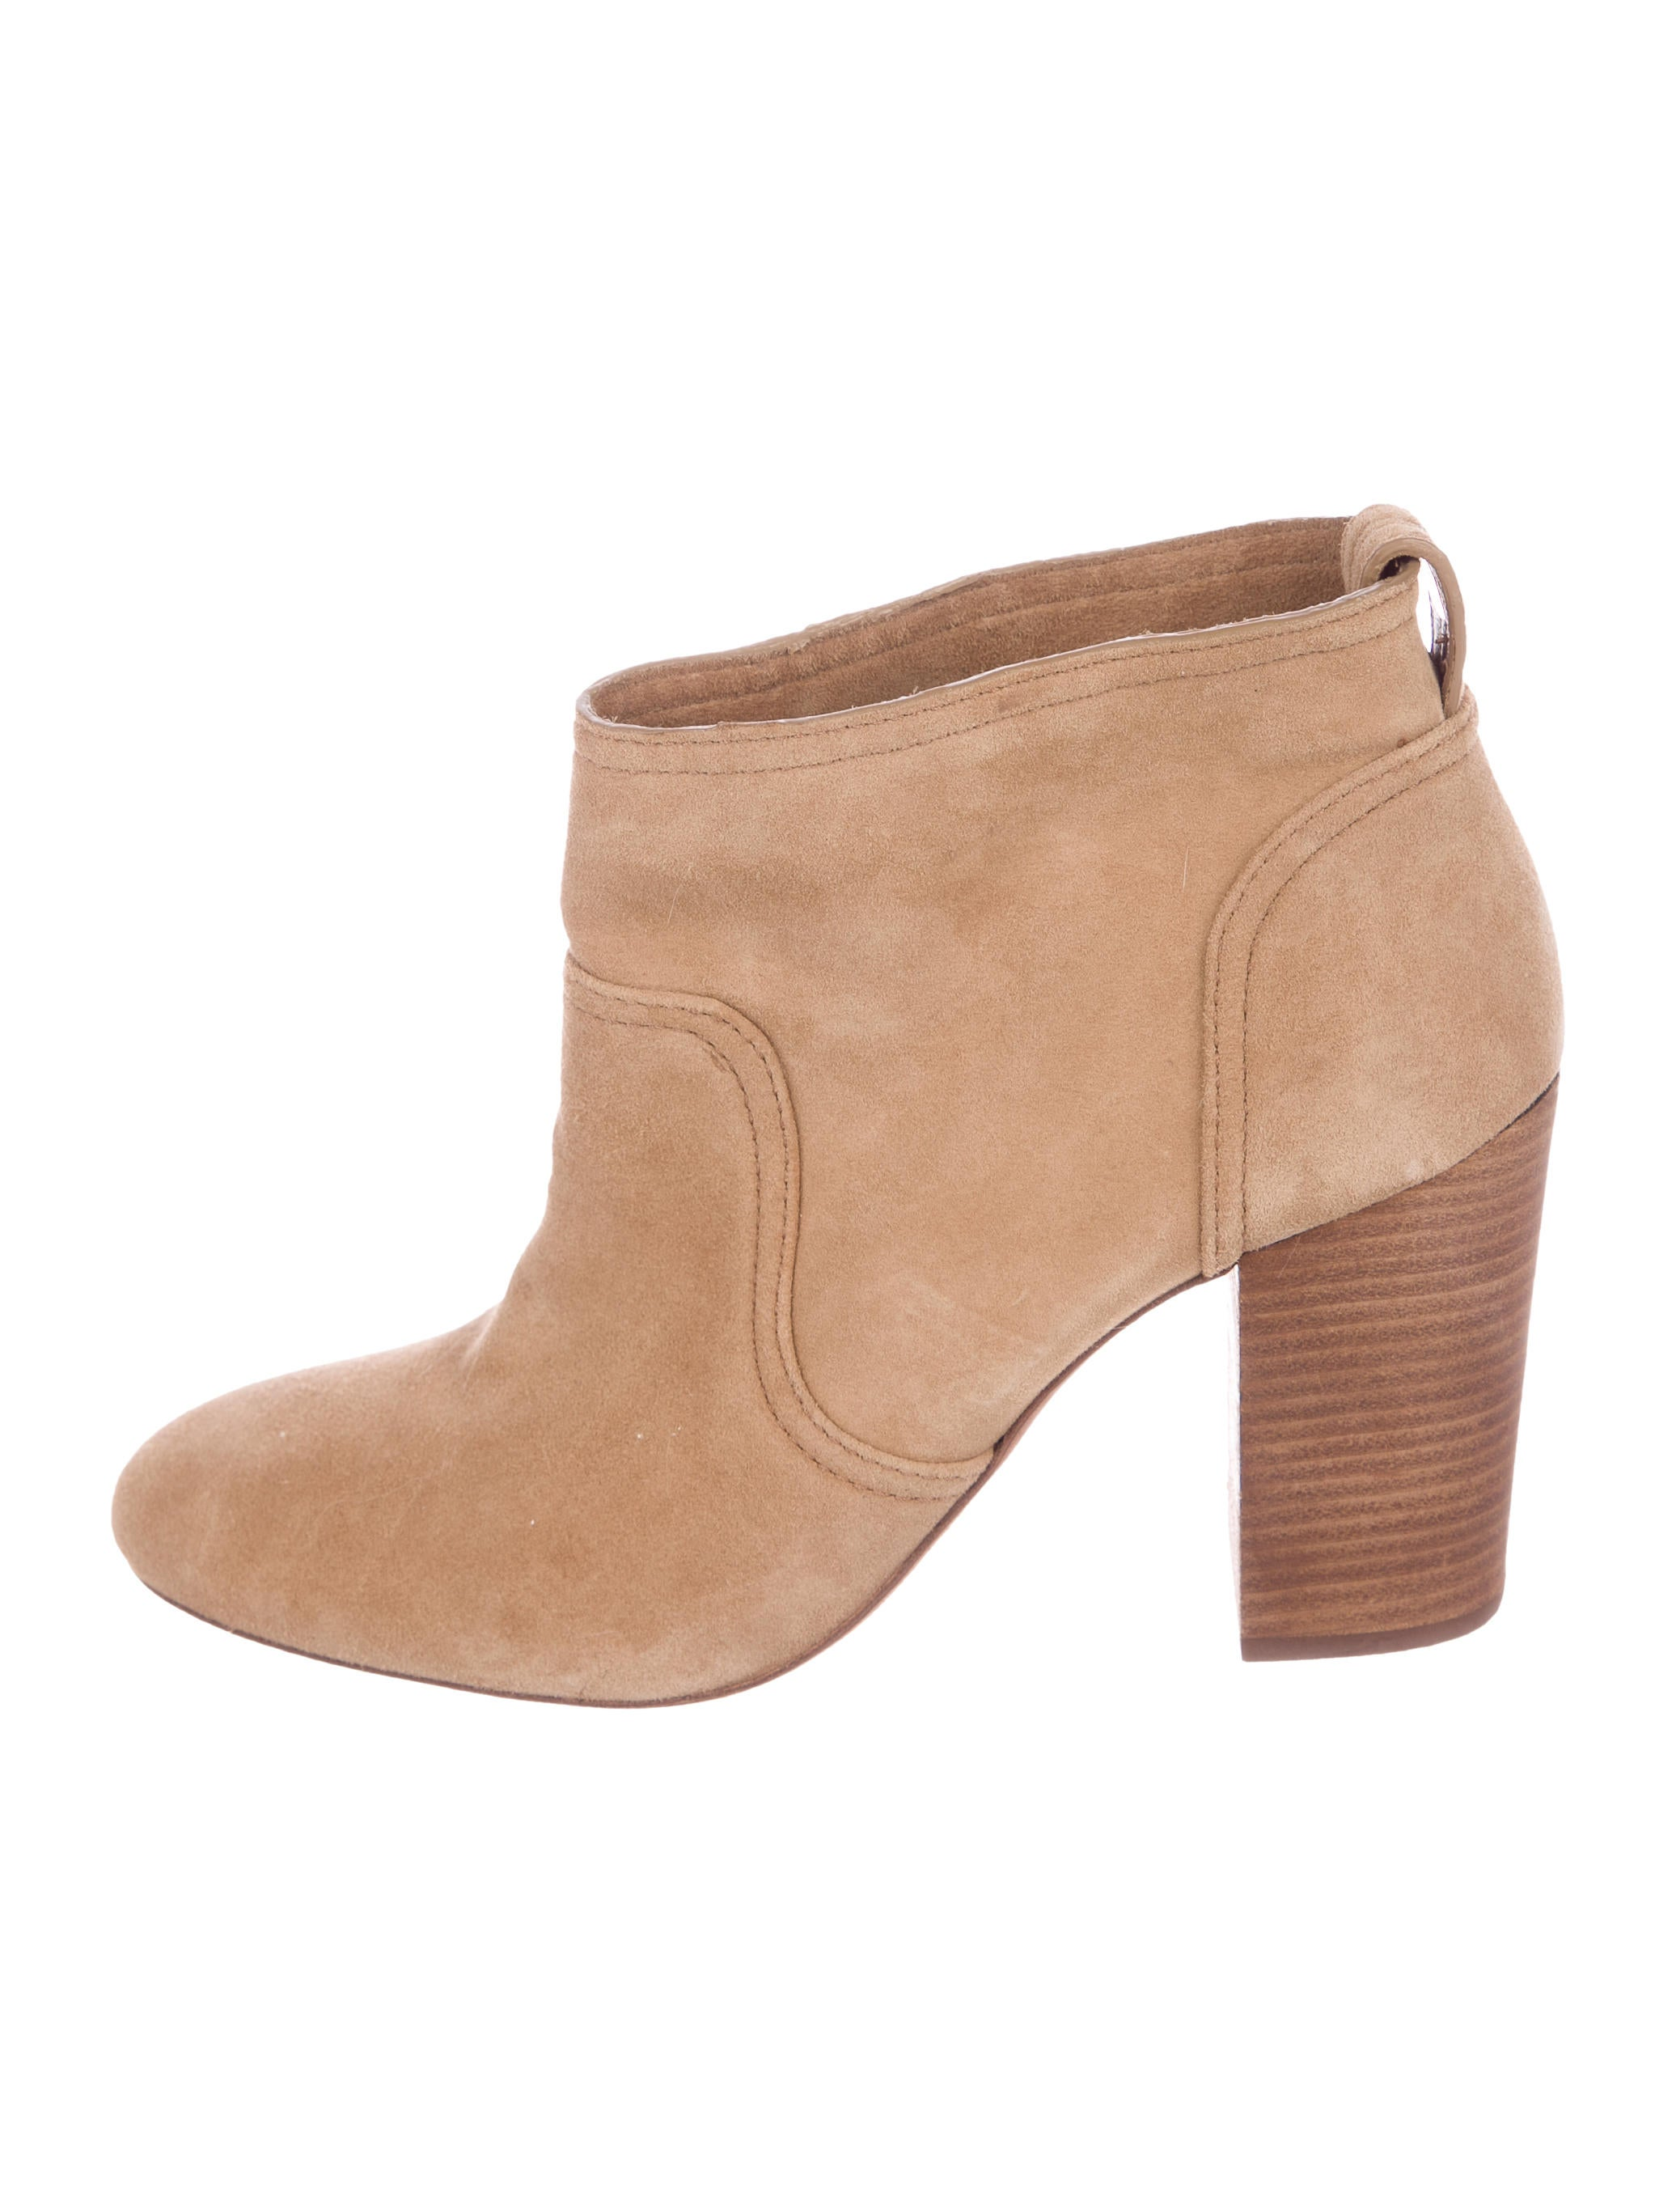 Tory Burch Round-Toe Suede Ankle Boots clearance how much footlocker sale online liPxl5efq